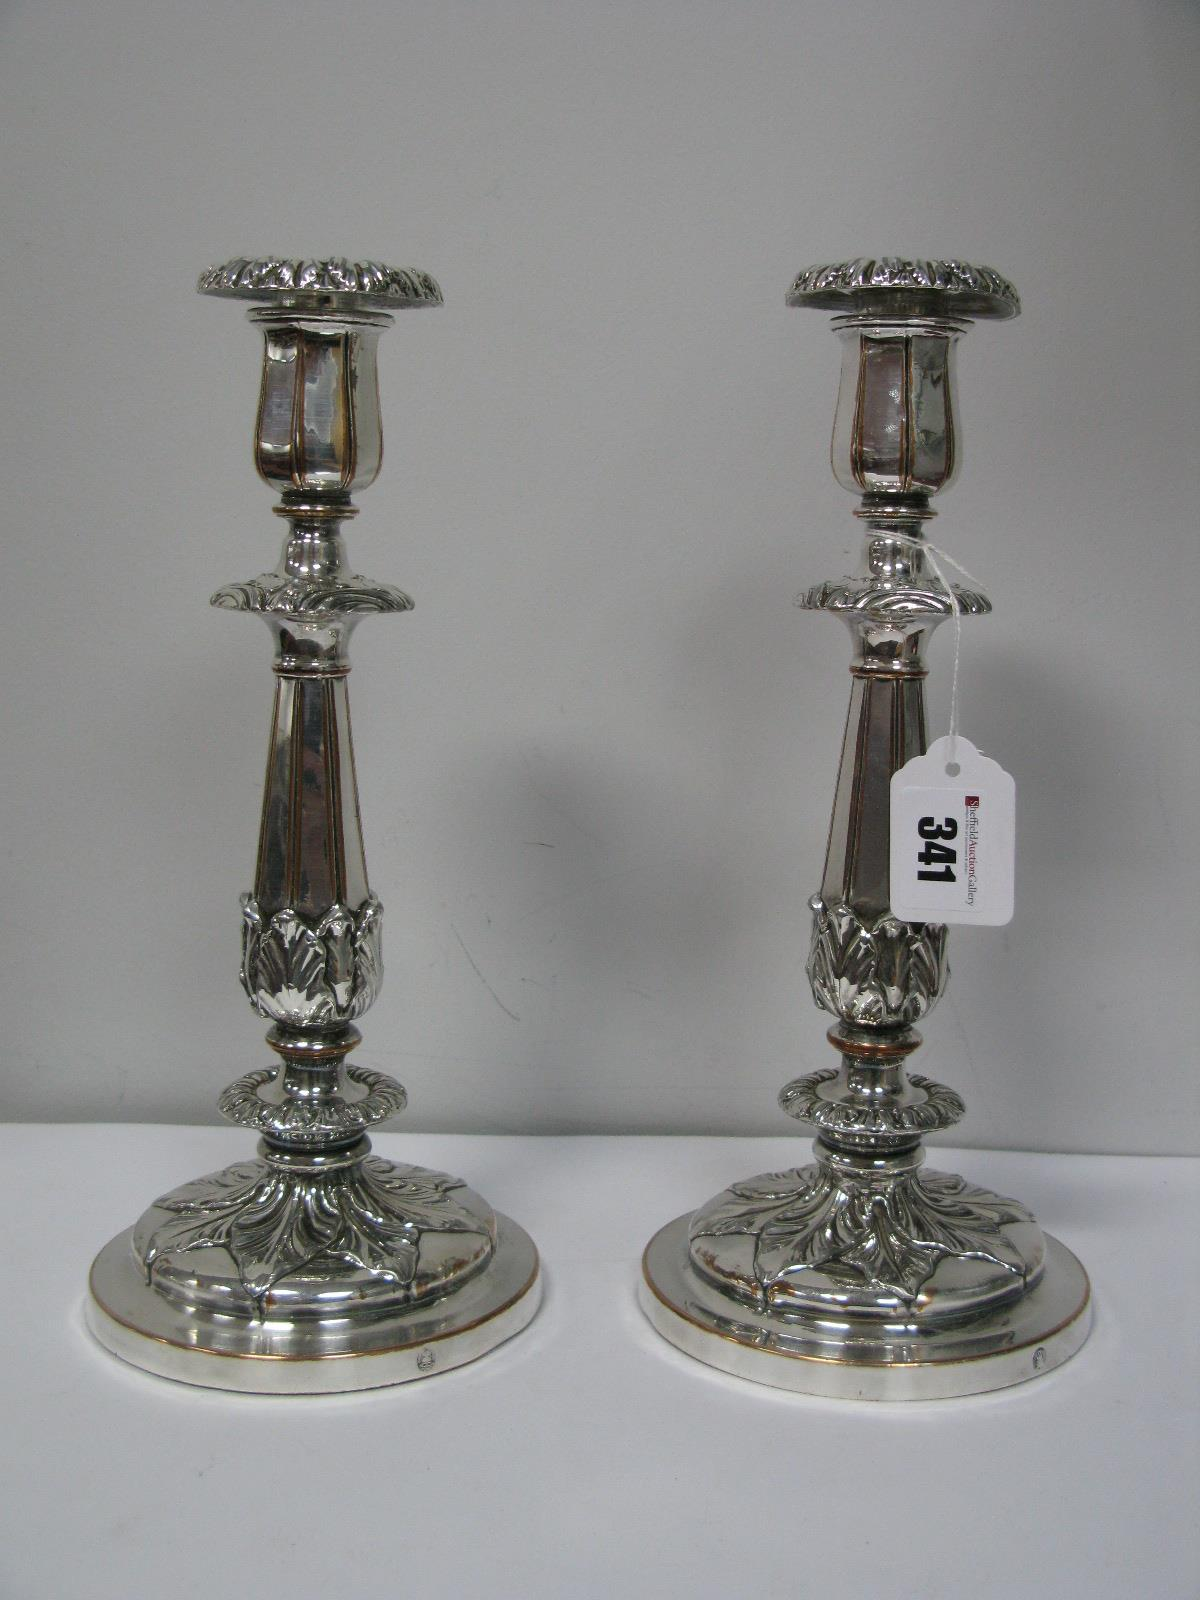 Lot 341 - A Pair of Sissons XIX Century Plated Candlesticks, each of stylised design with removable nozzle, on